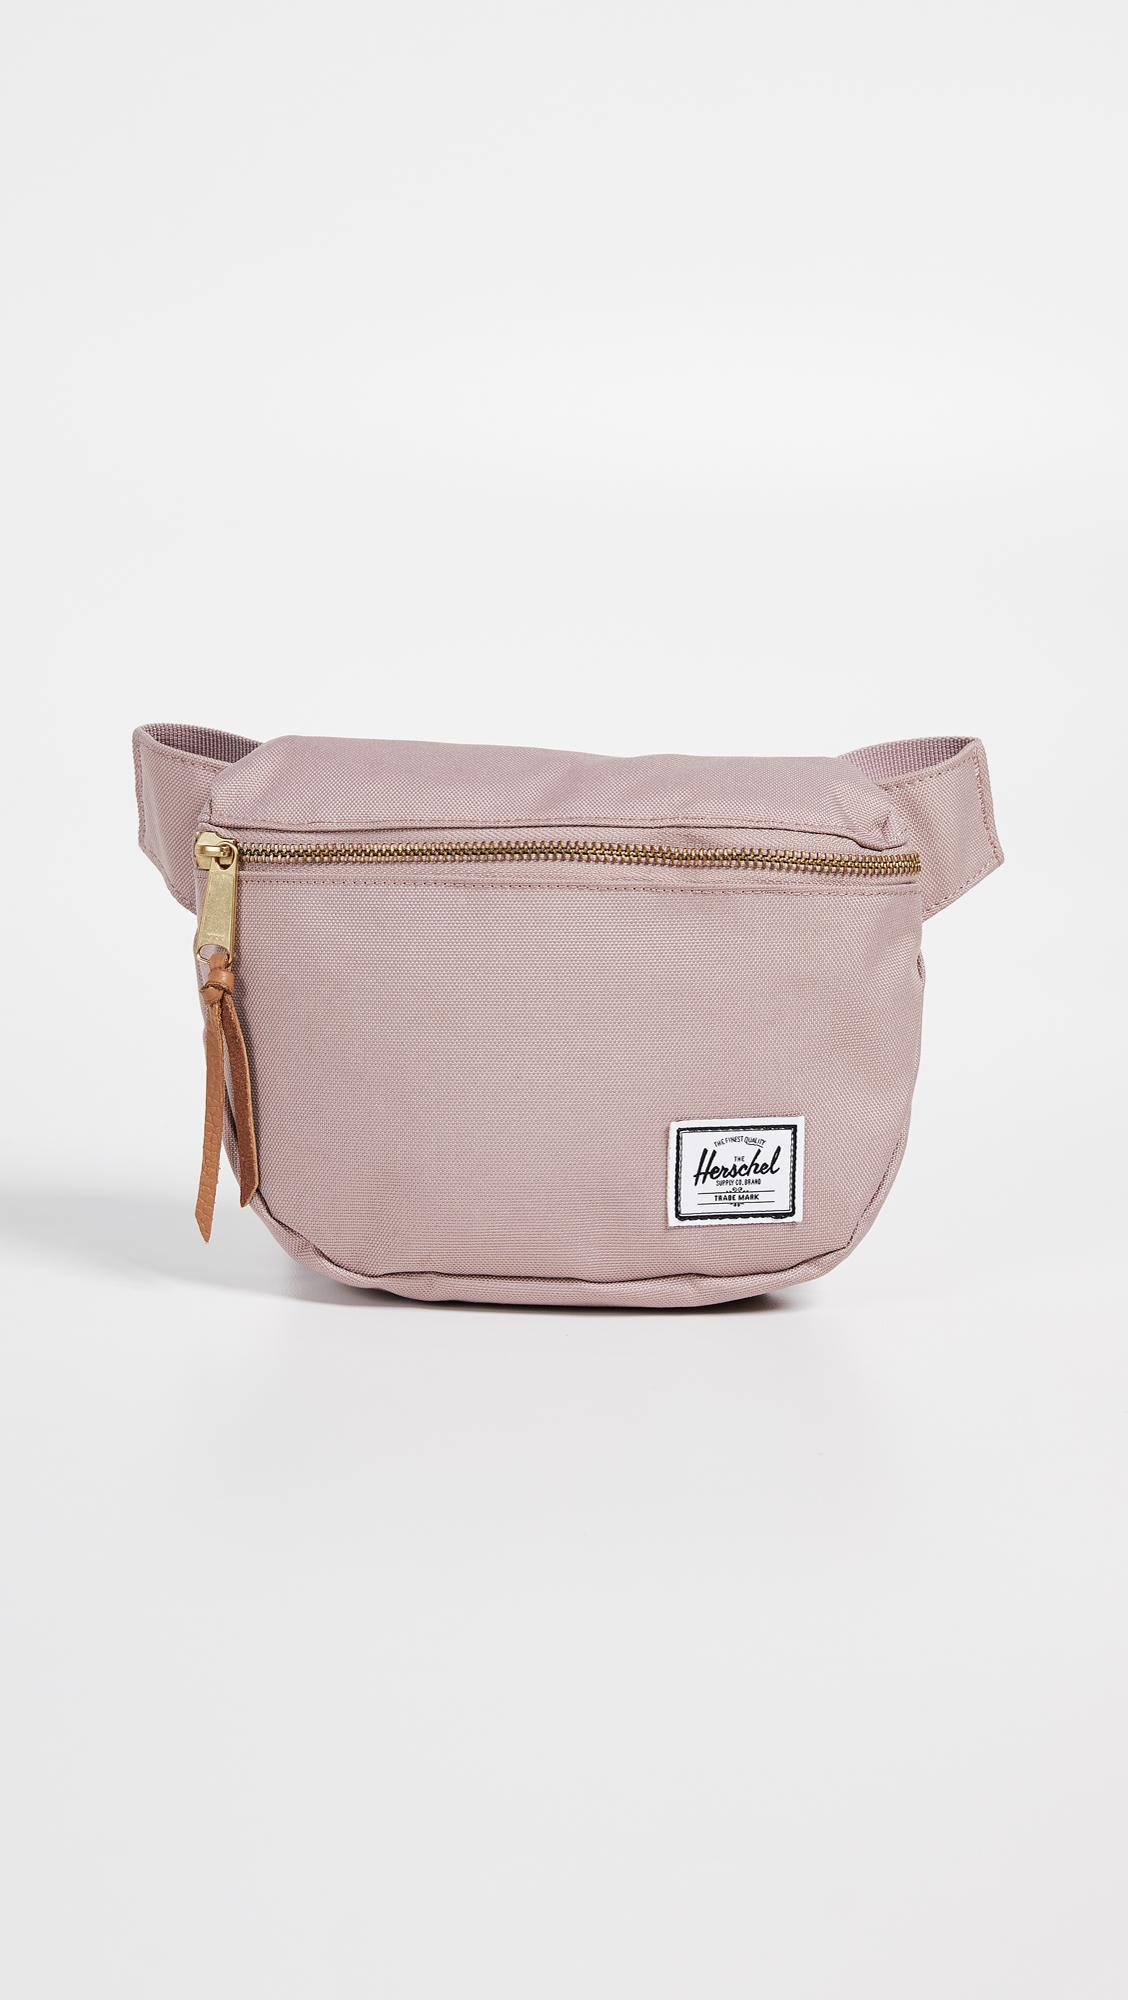 cc0322a0725 Herschel Supply Co. Fifteen Fanny Pack in Pink - Lyst